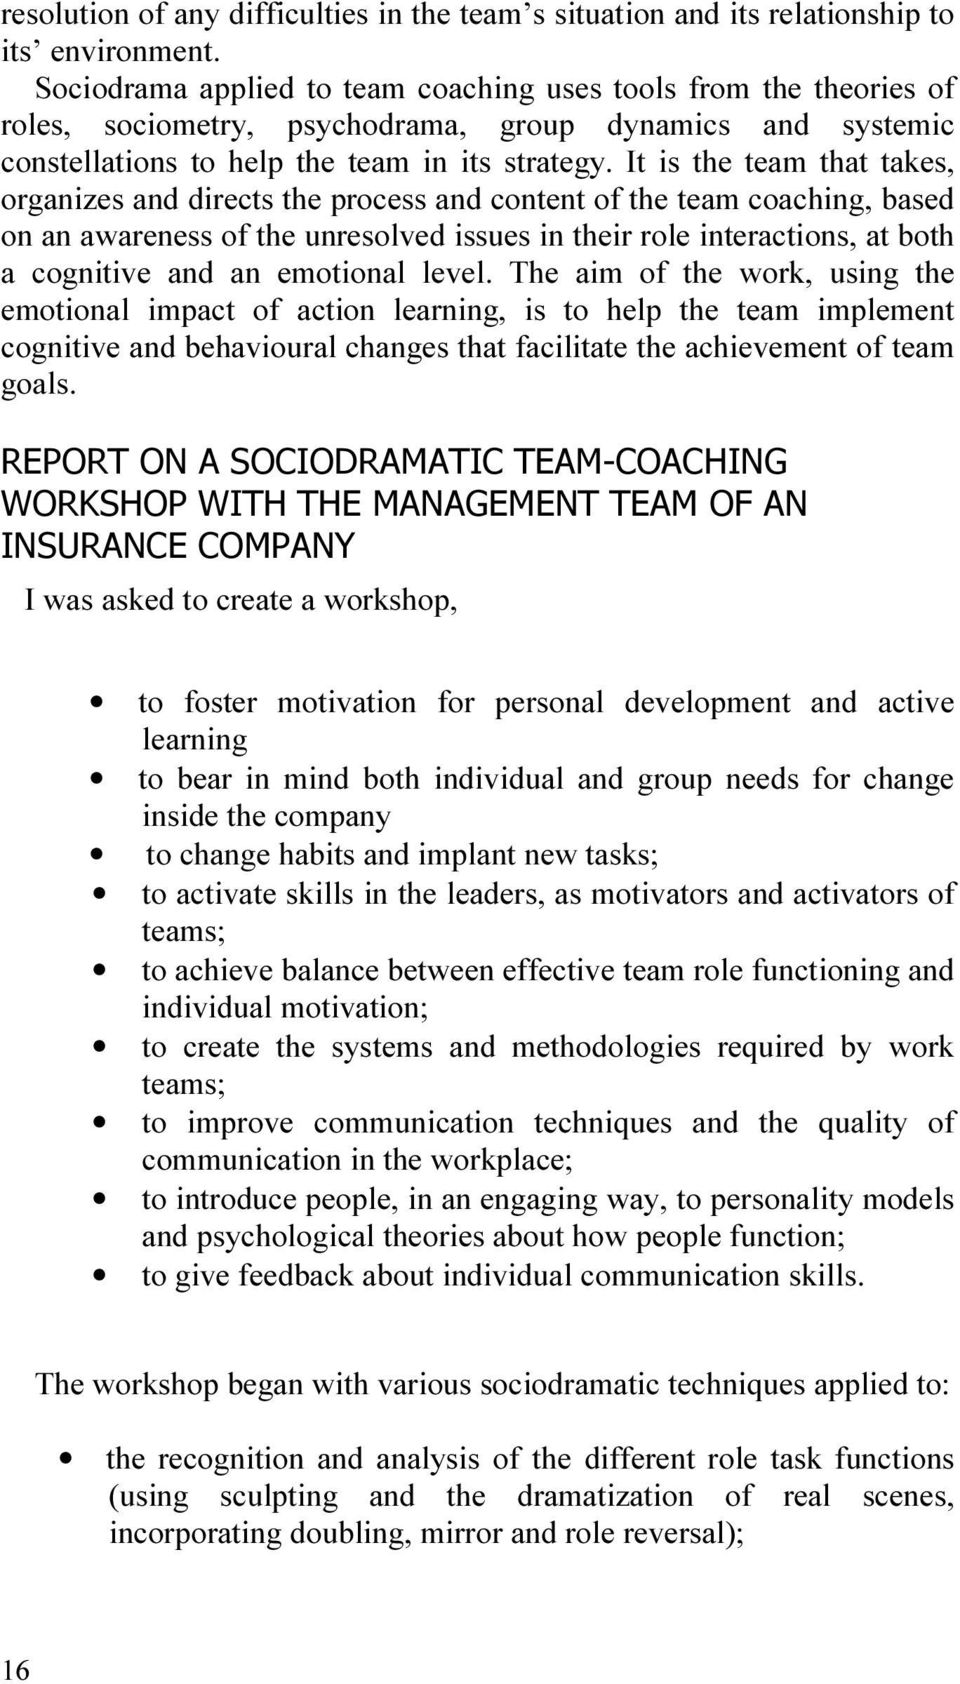 It is the team that takes, organizes and directs the process and content of the team coaching, based on an awareness of the unresolved issues in their role interactions, at both a cognitive and an